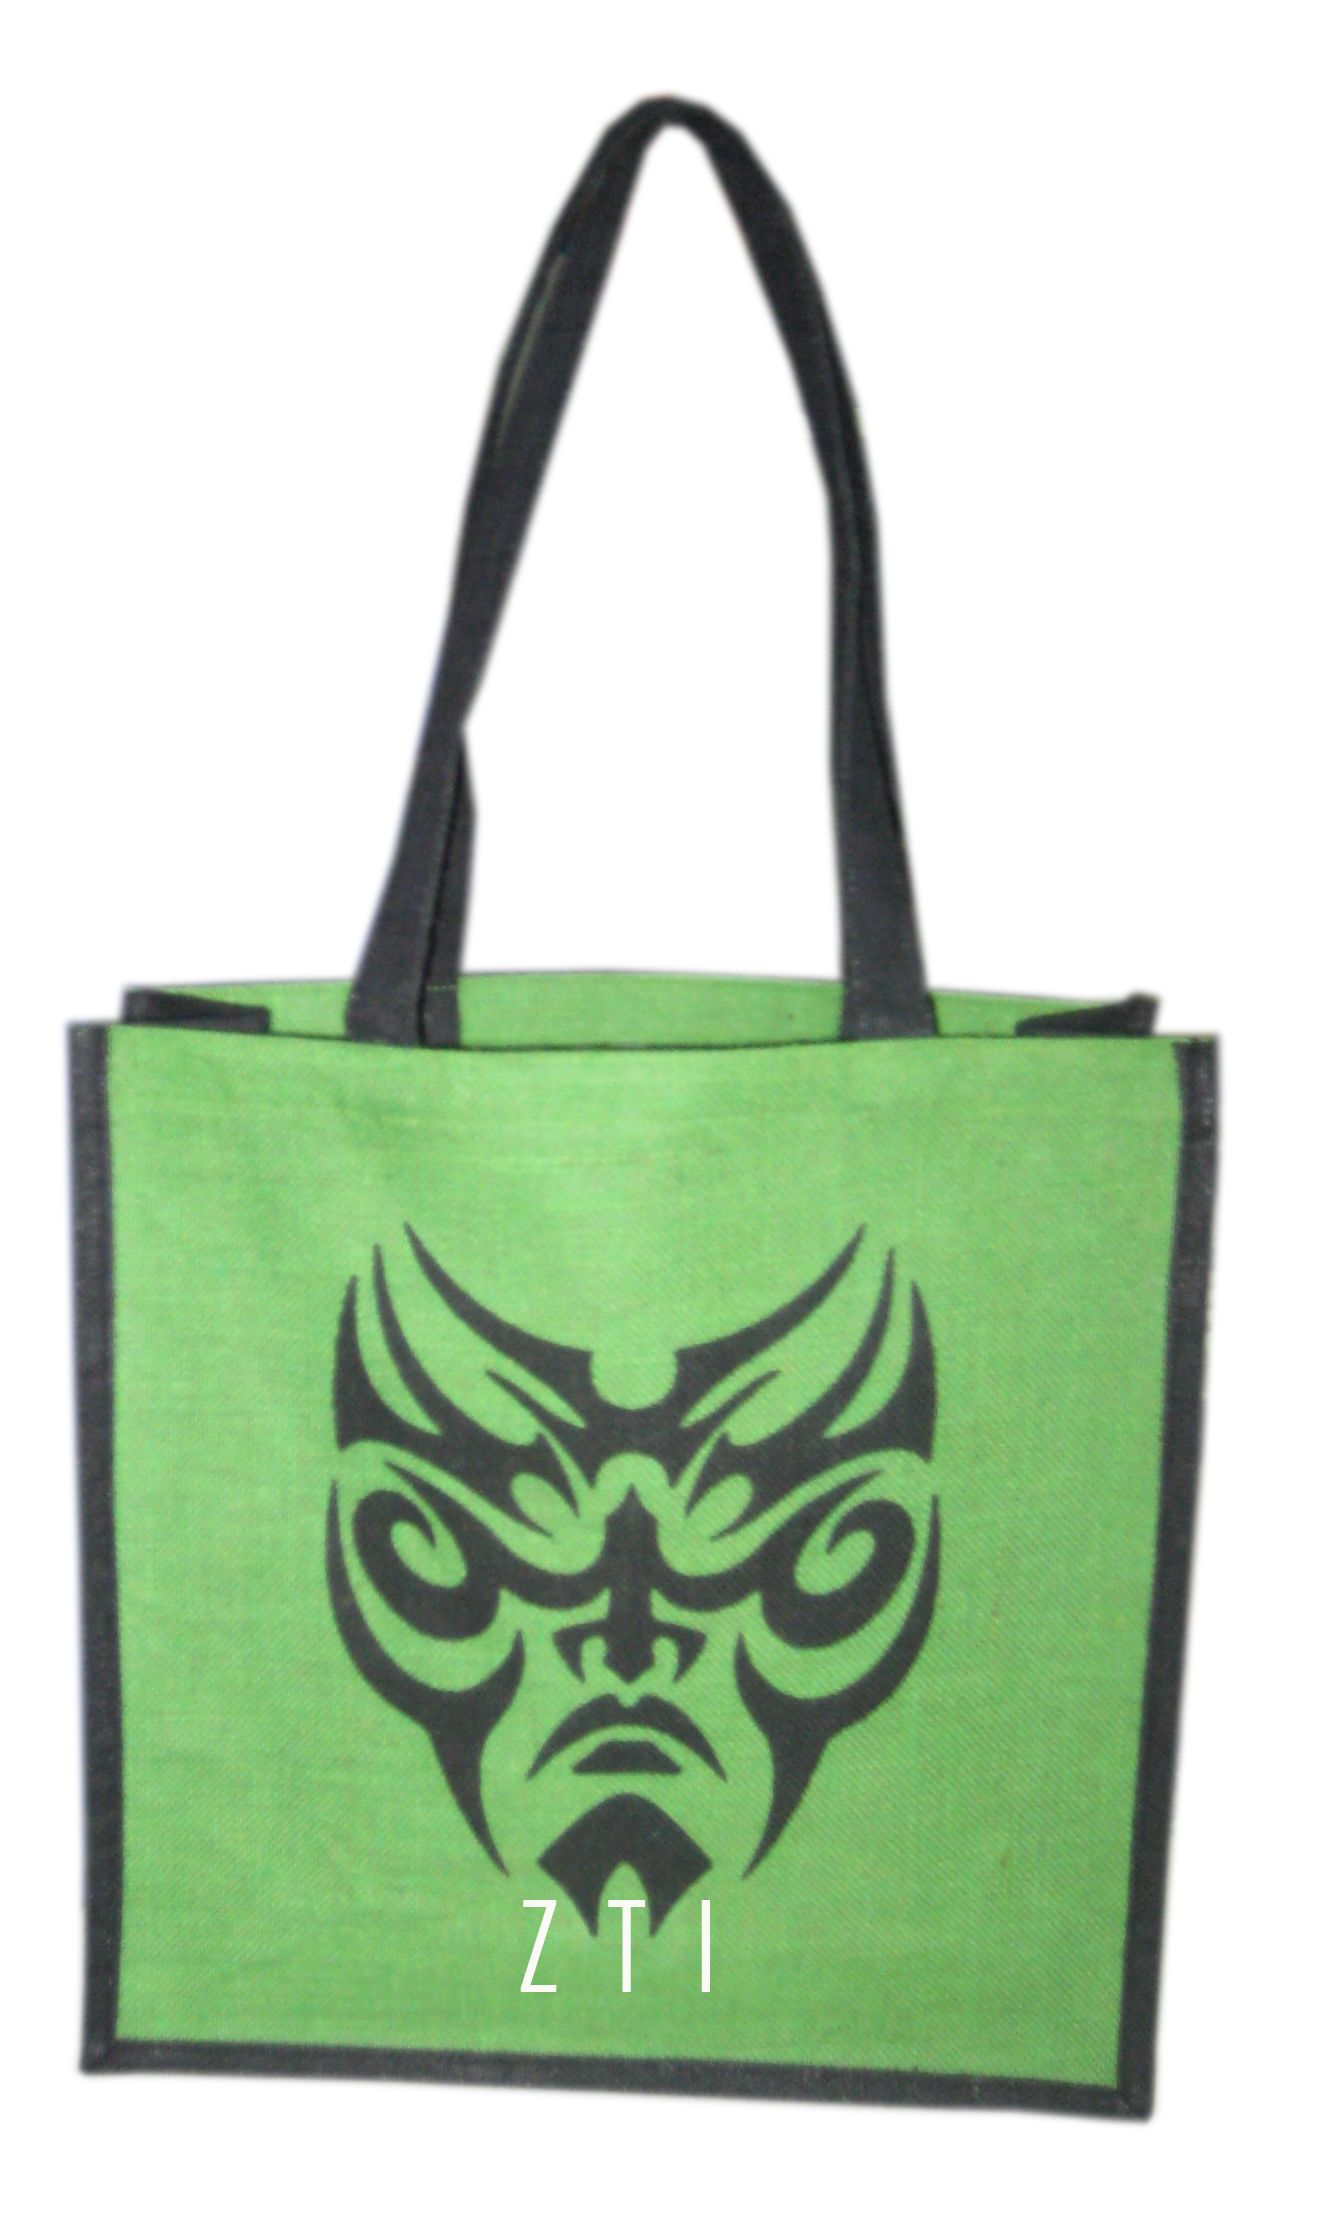 Buy from ZestTex, wholesale jute bags suppliers and save mother earth and  save money by 049b65fc23